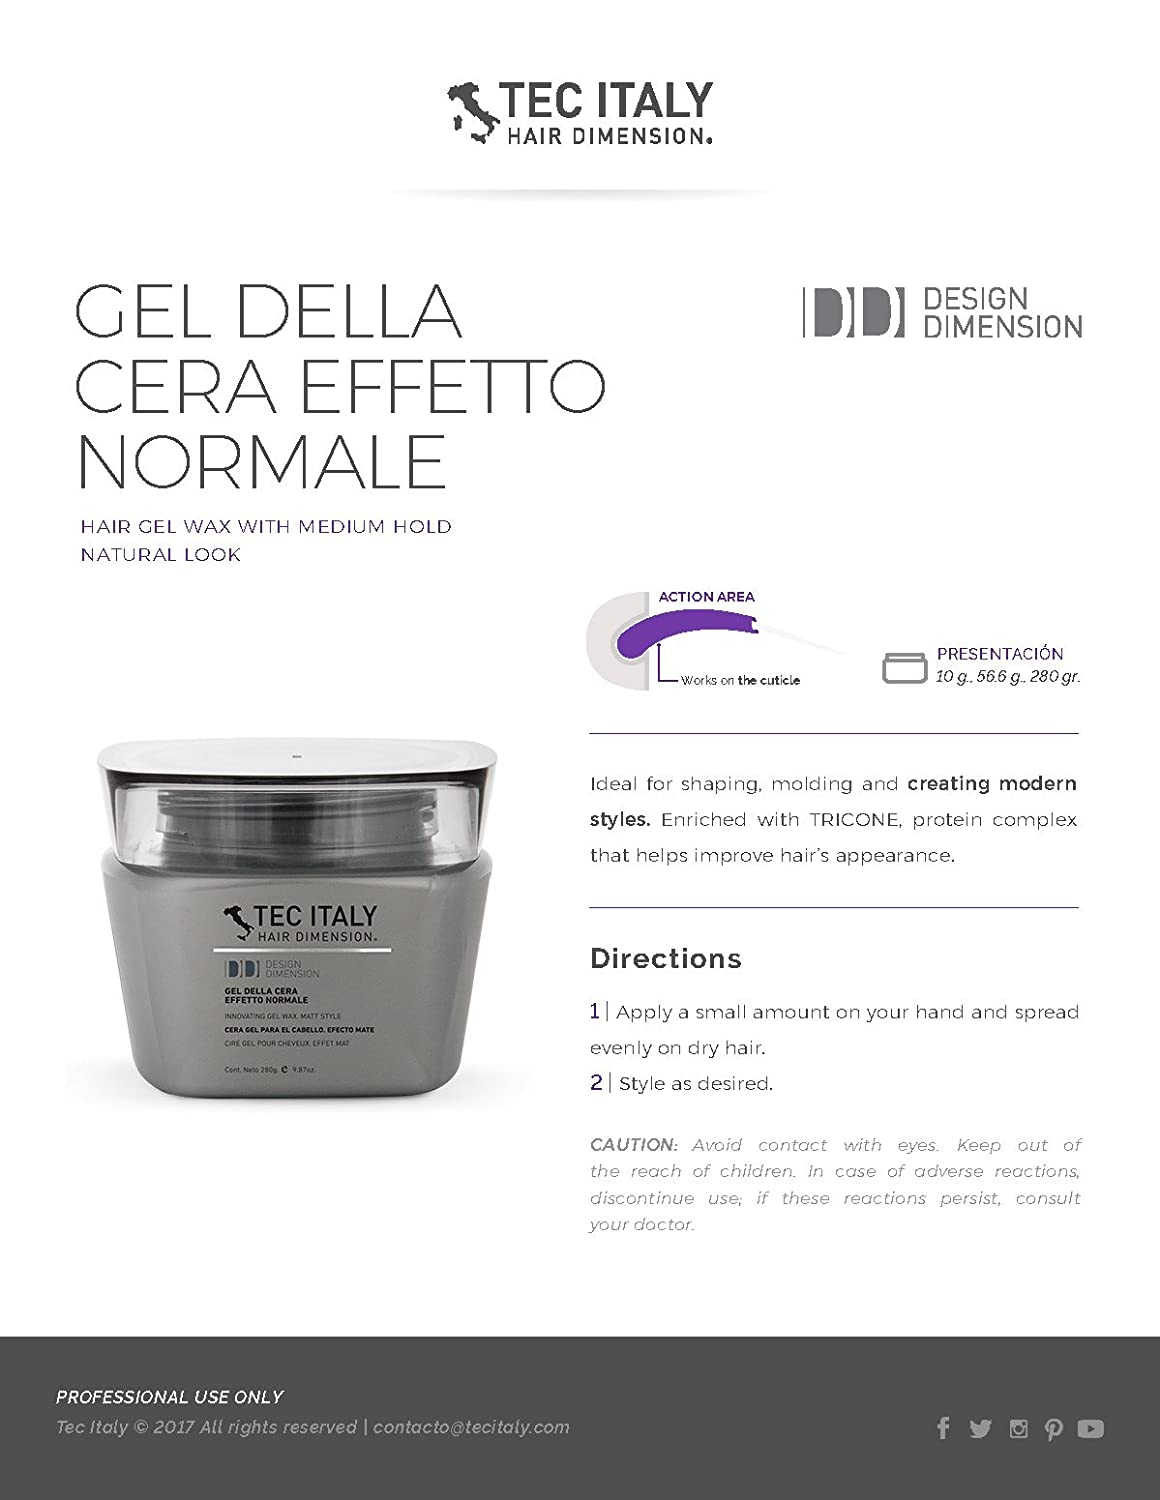 Amazon.com : Tec Italy Gel Della Cera Effetto Humedo - 280 g/9.8 oz : Hair Care Products : Beauty